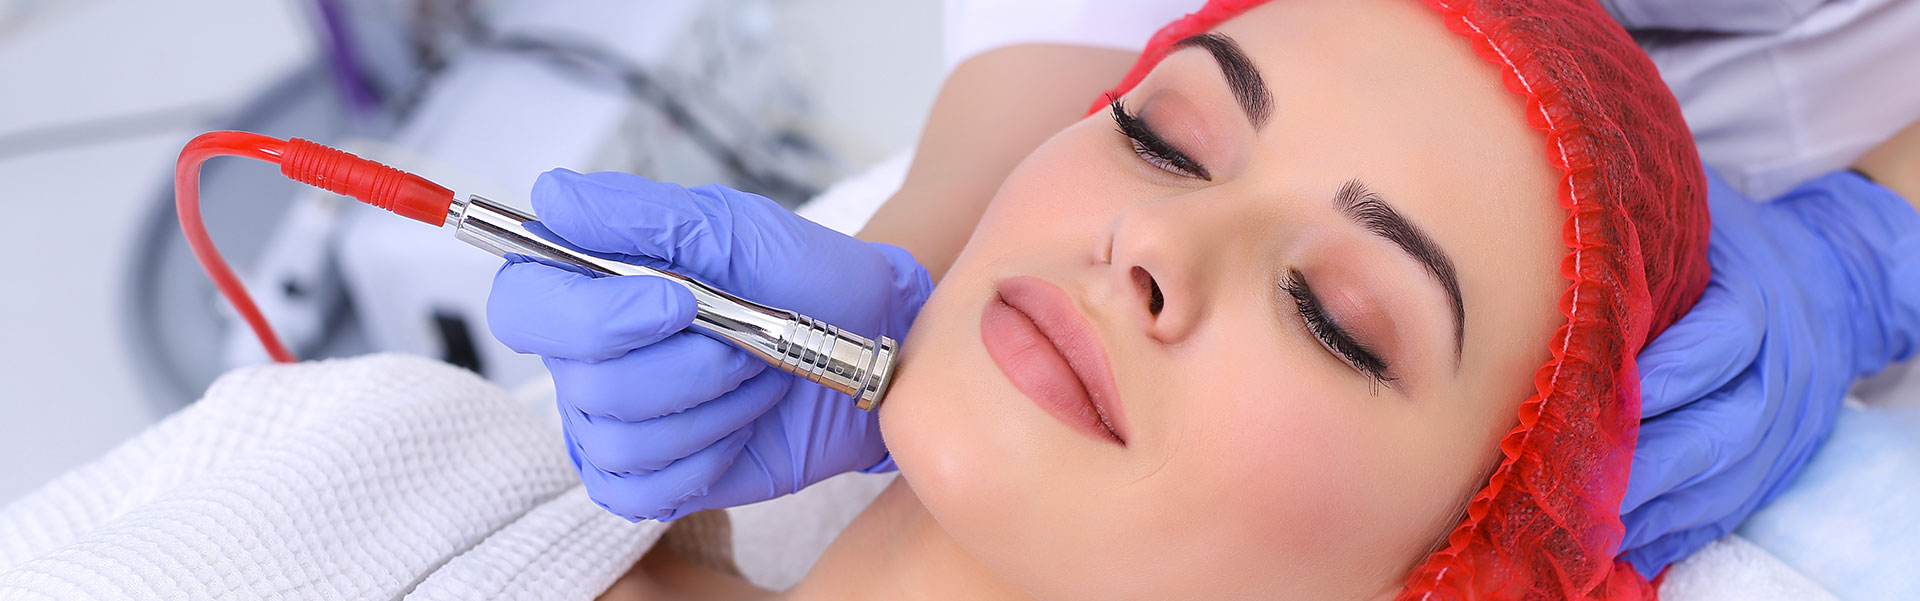 Eliminate fine lines and wrinkles by getting a Micro-Needling treatment.